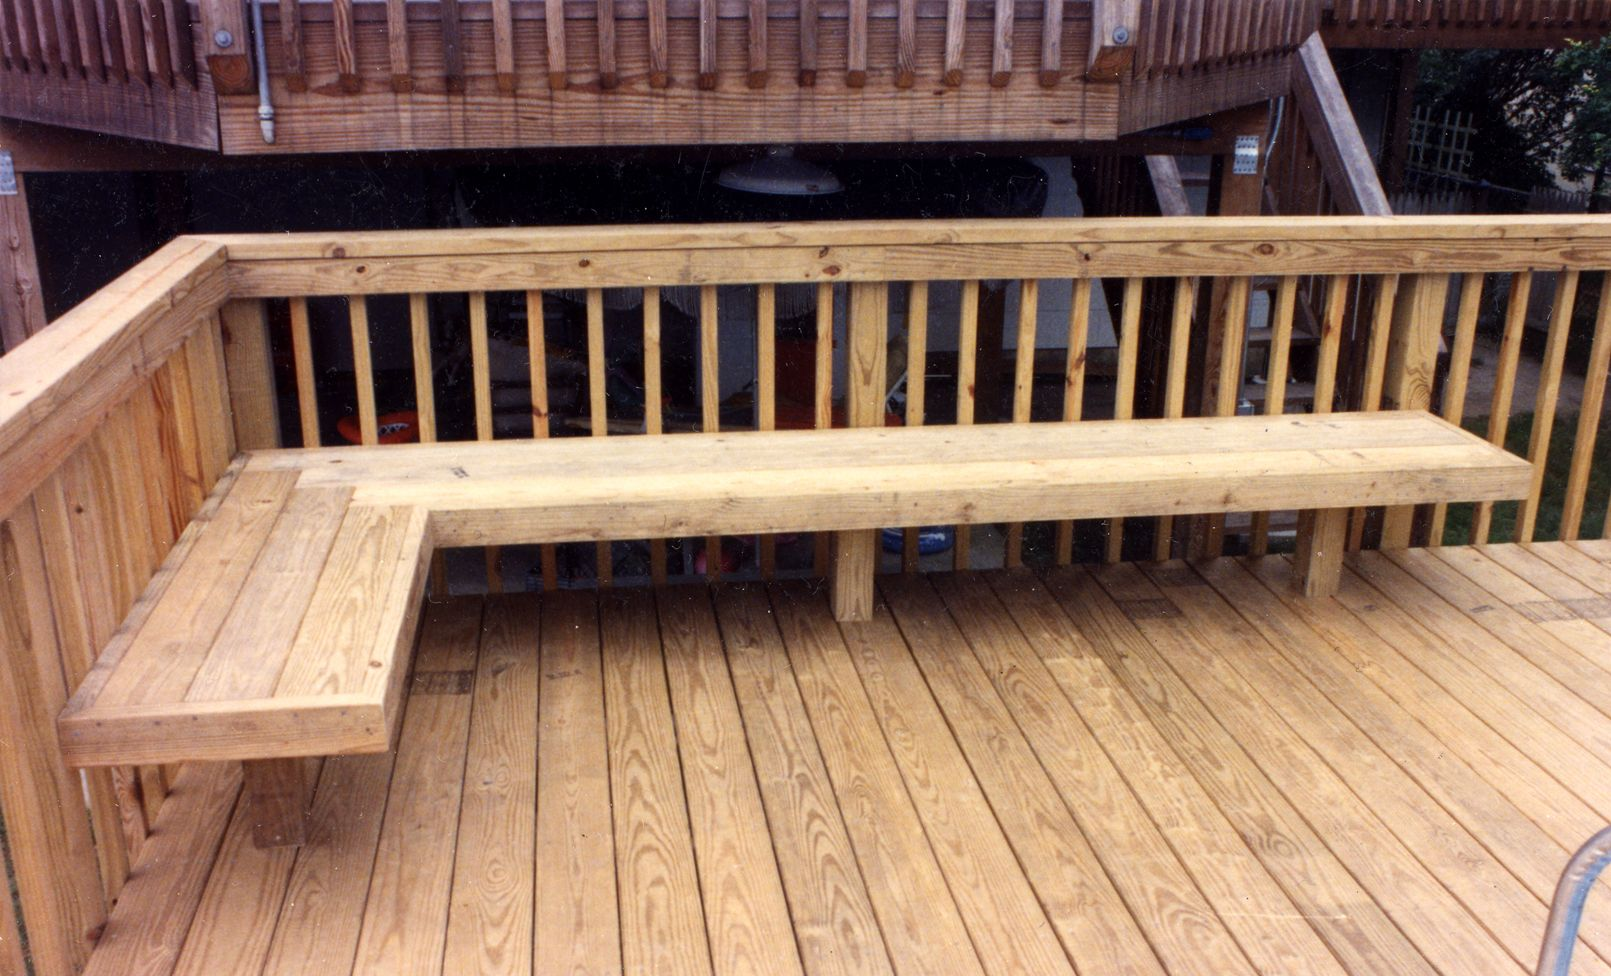 Built In Deck Seating As Railing Google Search Deck Seating